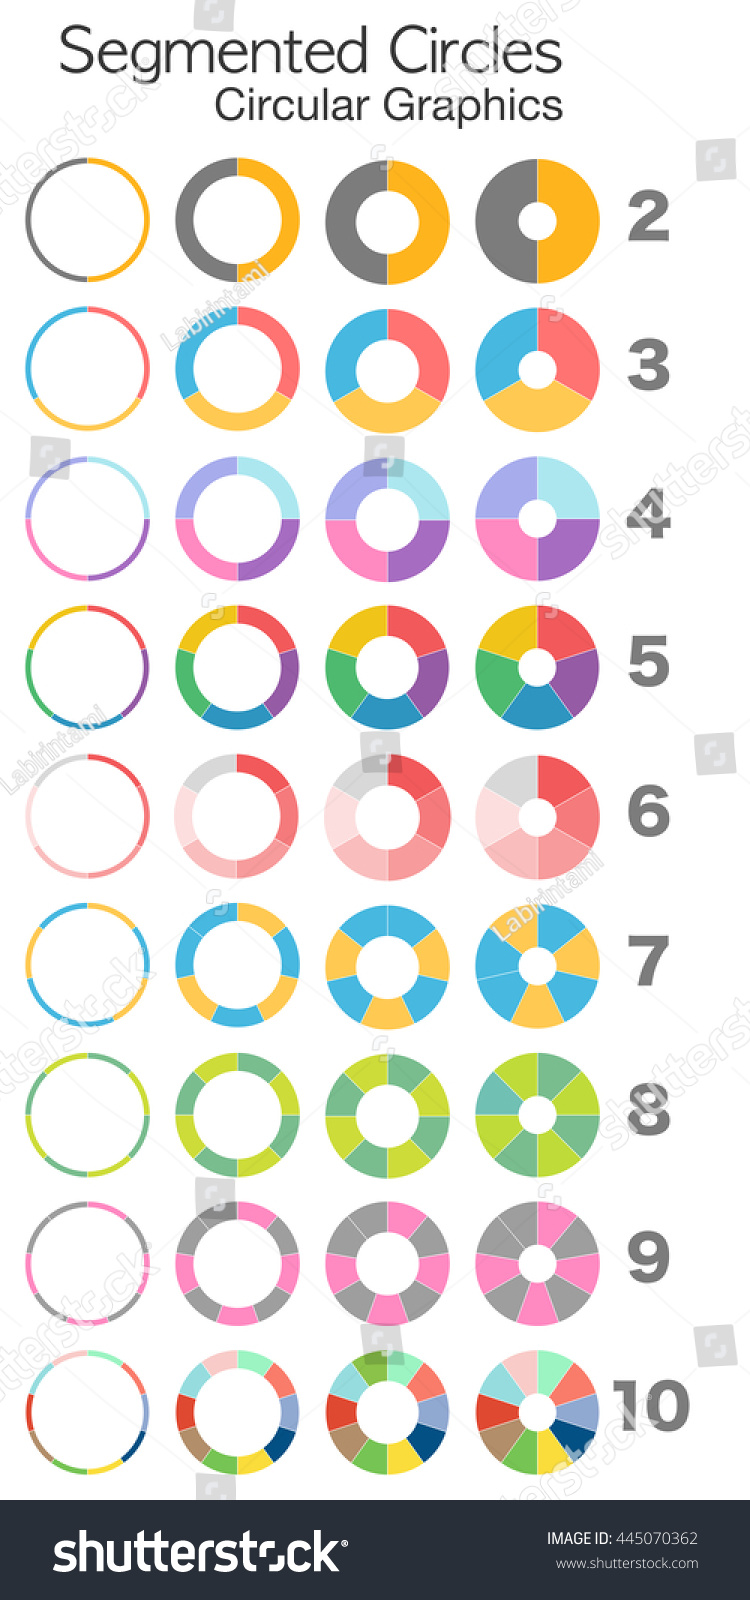 Fast quality generator pie charts pie stock vector 445070362 fast quality generator pie charts pie diagram doughnut chart segmented circles circular nvjuhfo Images